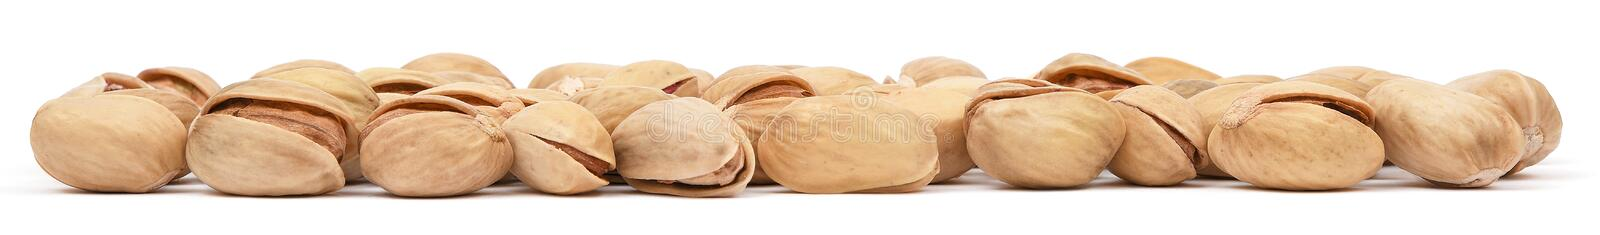 Pistachio isolated on white background. Pistachios closeup panorama. Nuts macro collection.  royalty free stock photo